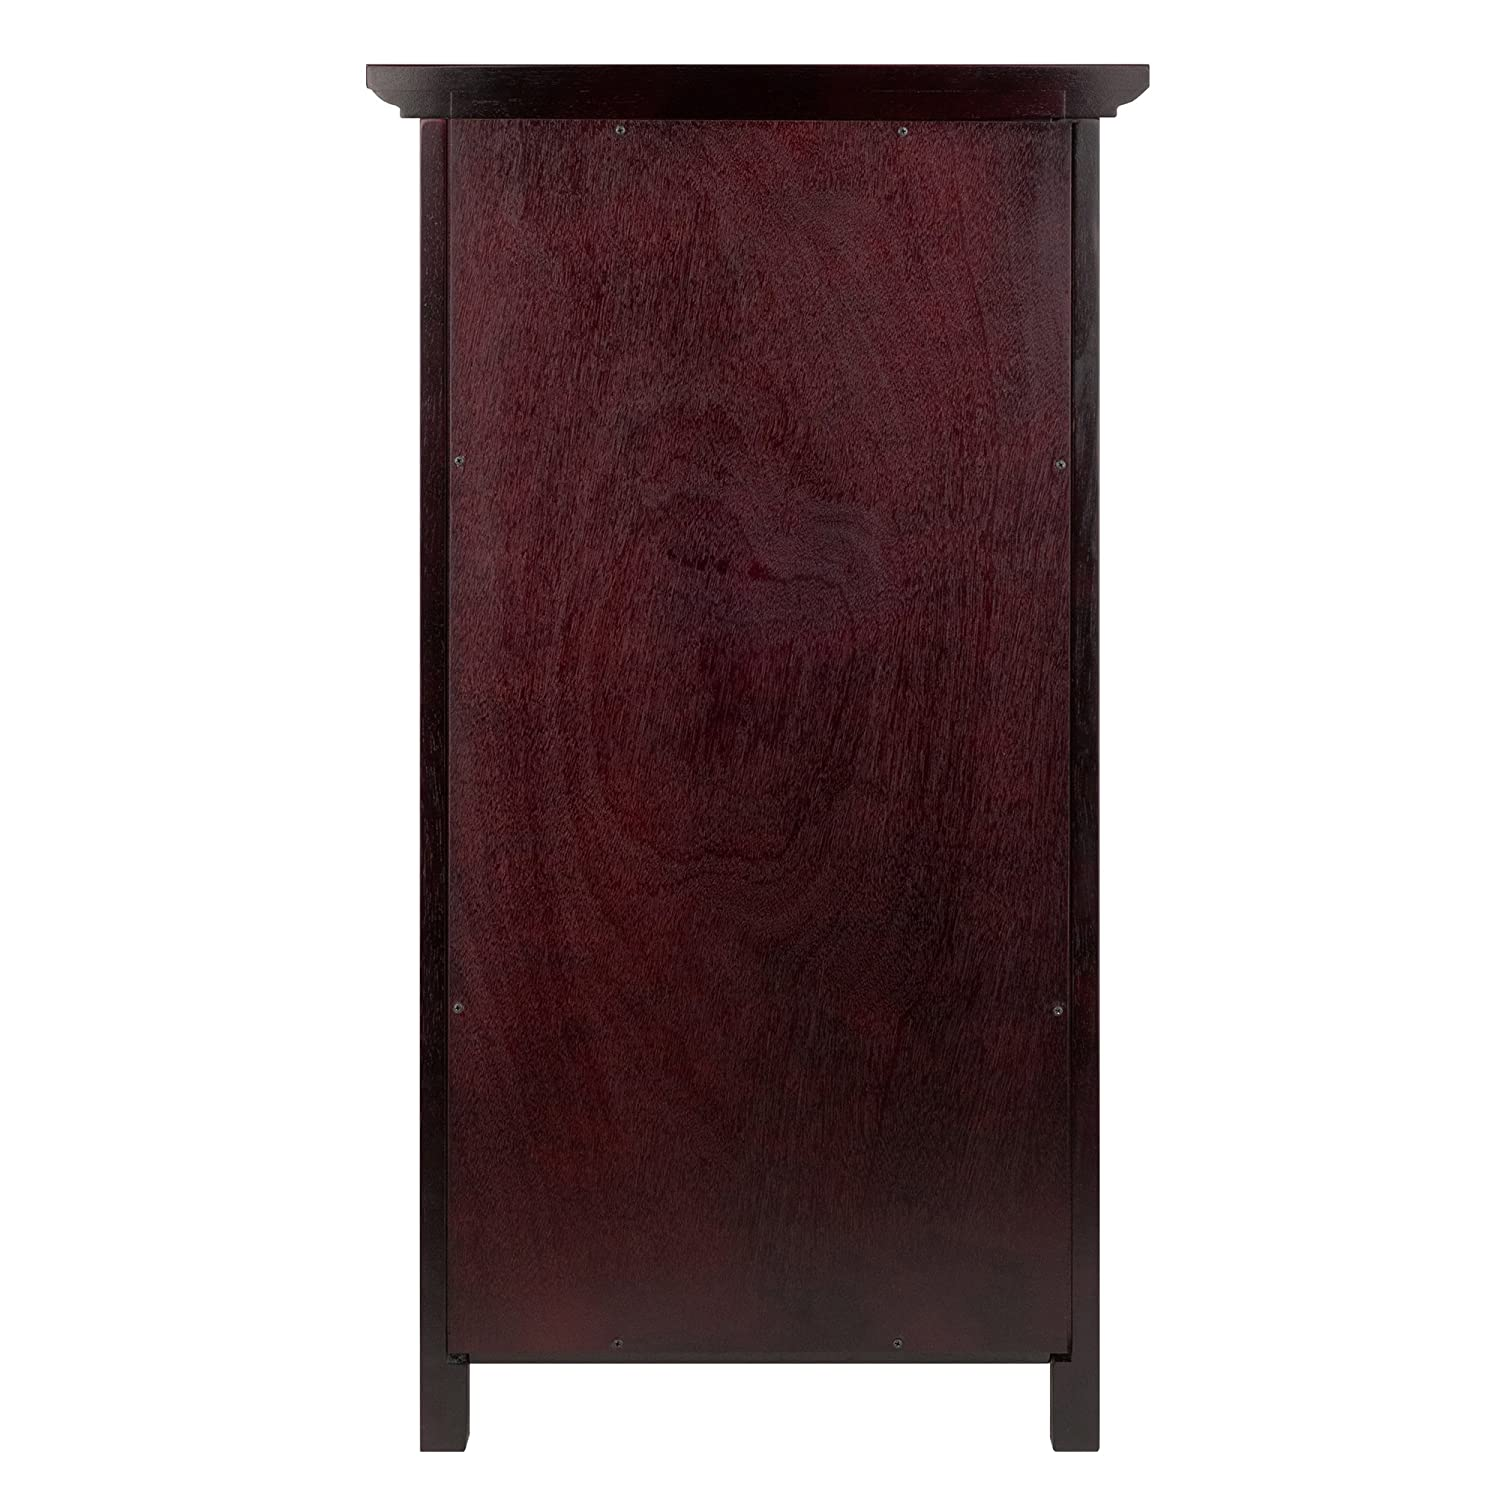 Amazoncom Winsome Wood Wine Cabinet With French Doors, Espresso Kitchen